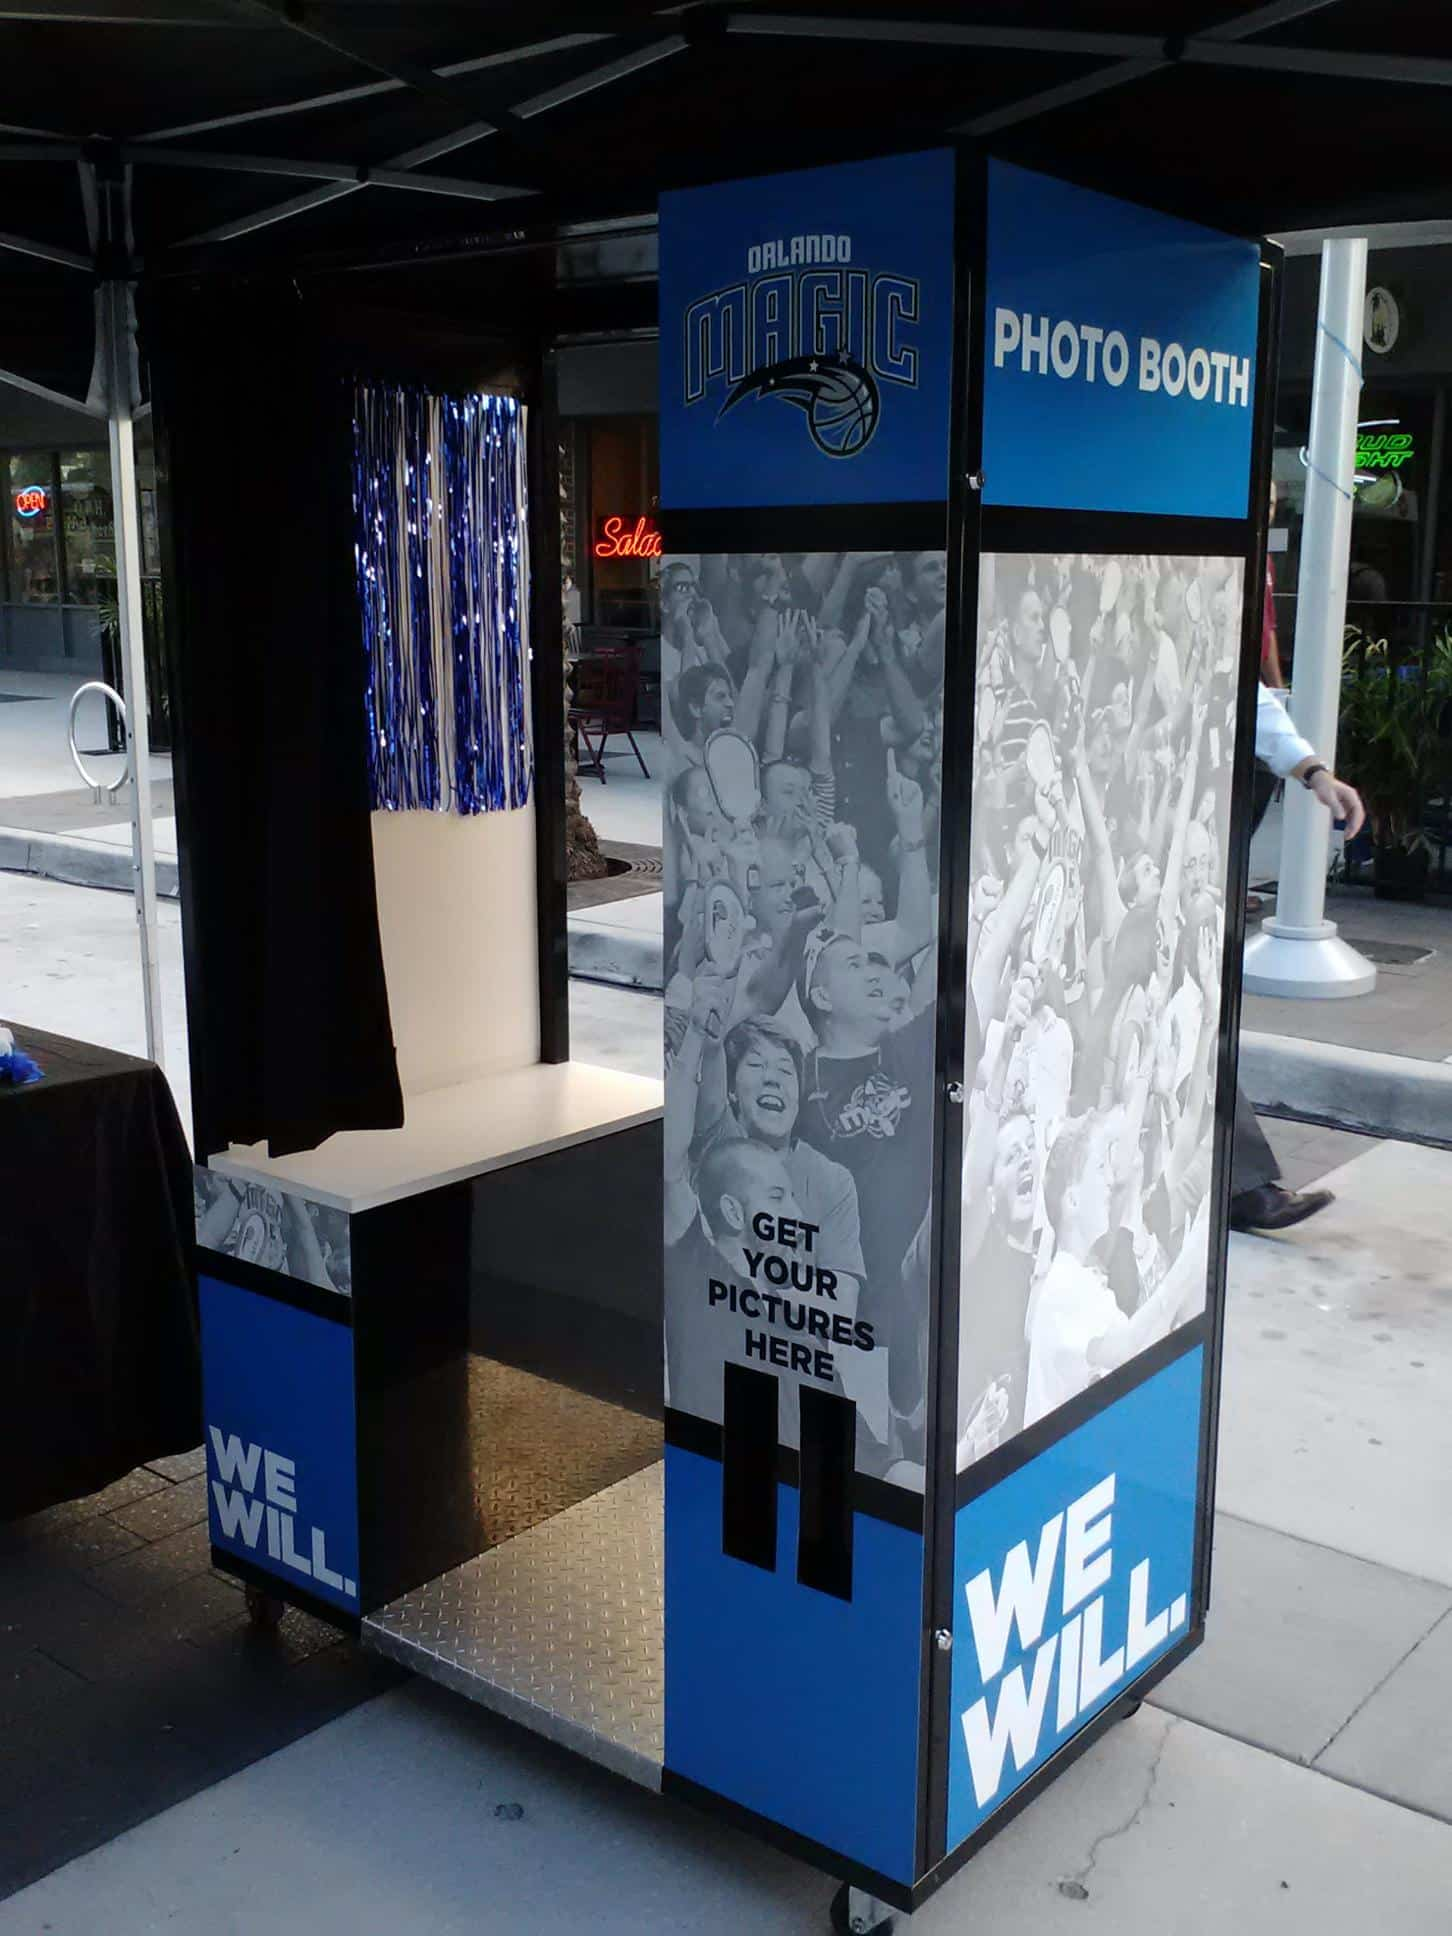 photo booth custom wrapped for Orlando Magic